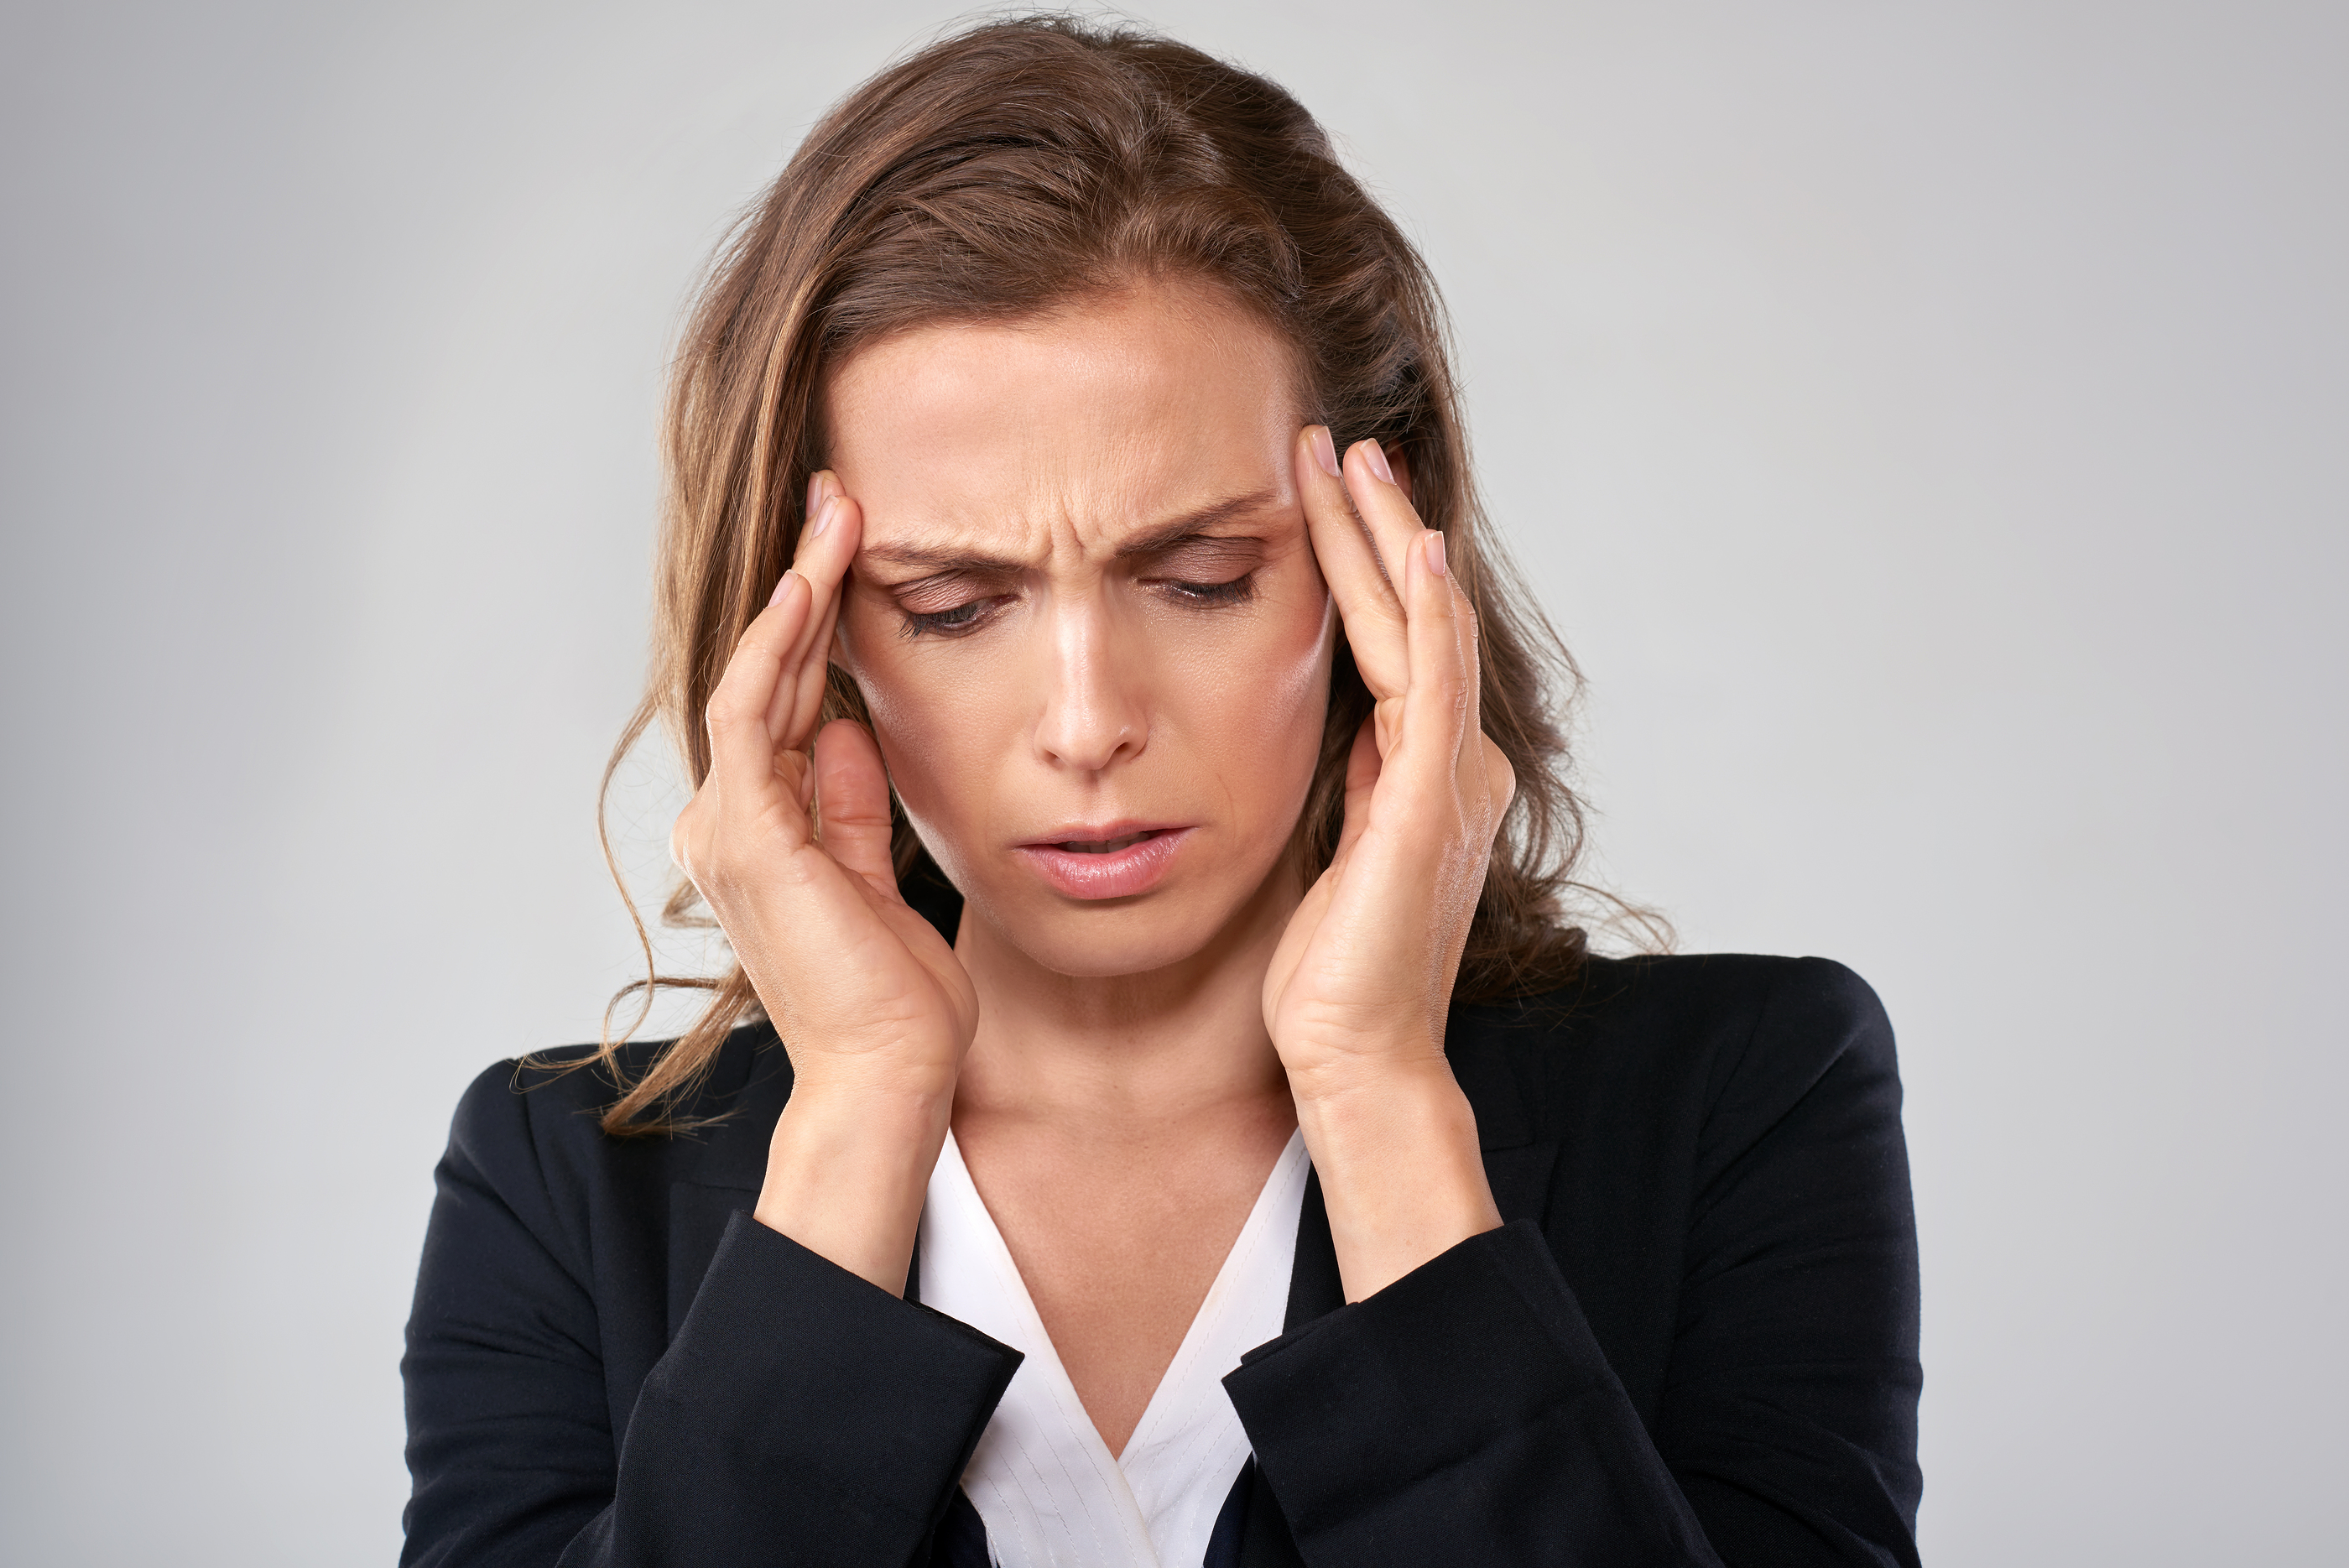 migraines-triggers-easy-natural-safe-solution